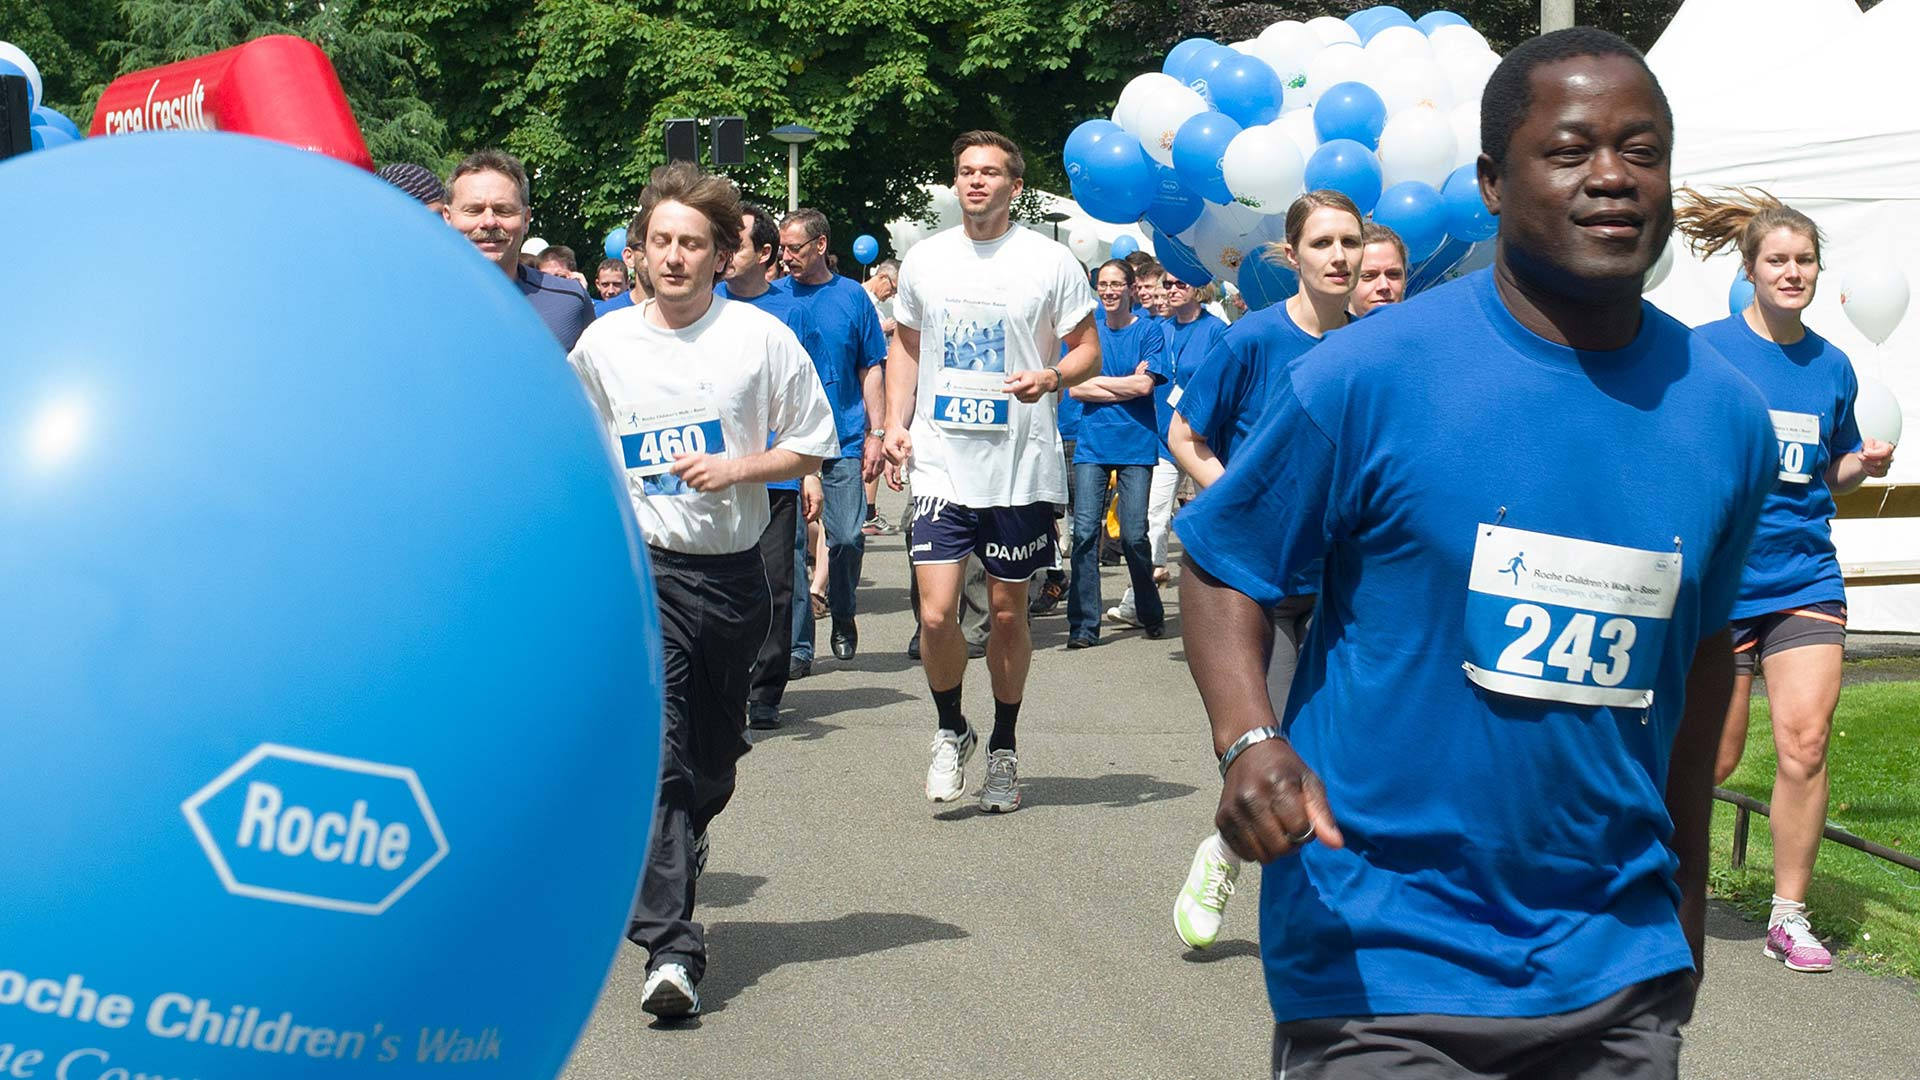 Roche employees wearing blue and white Roche t-shirts participating in a running event for the children's walk